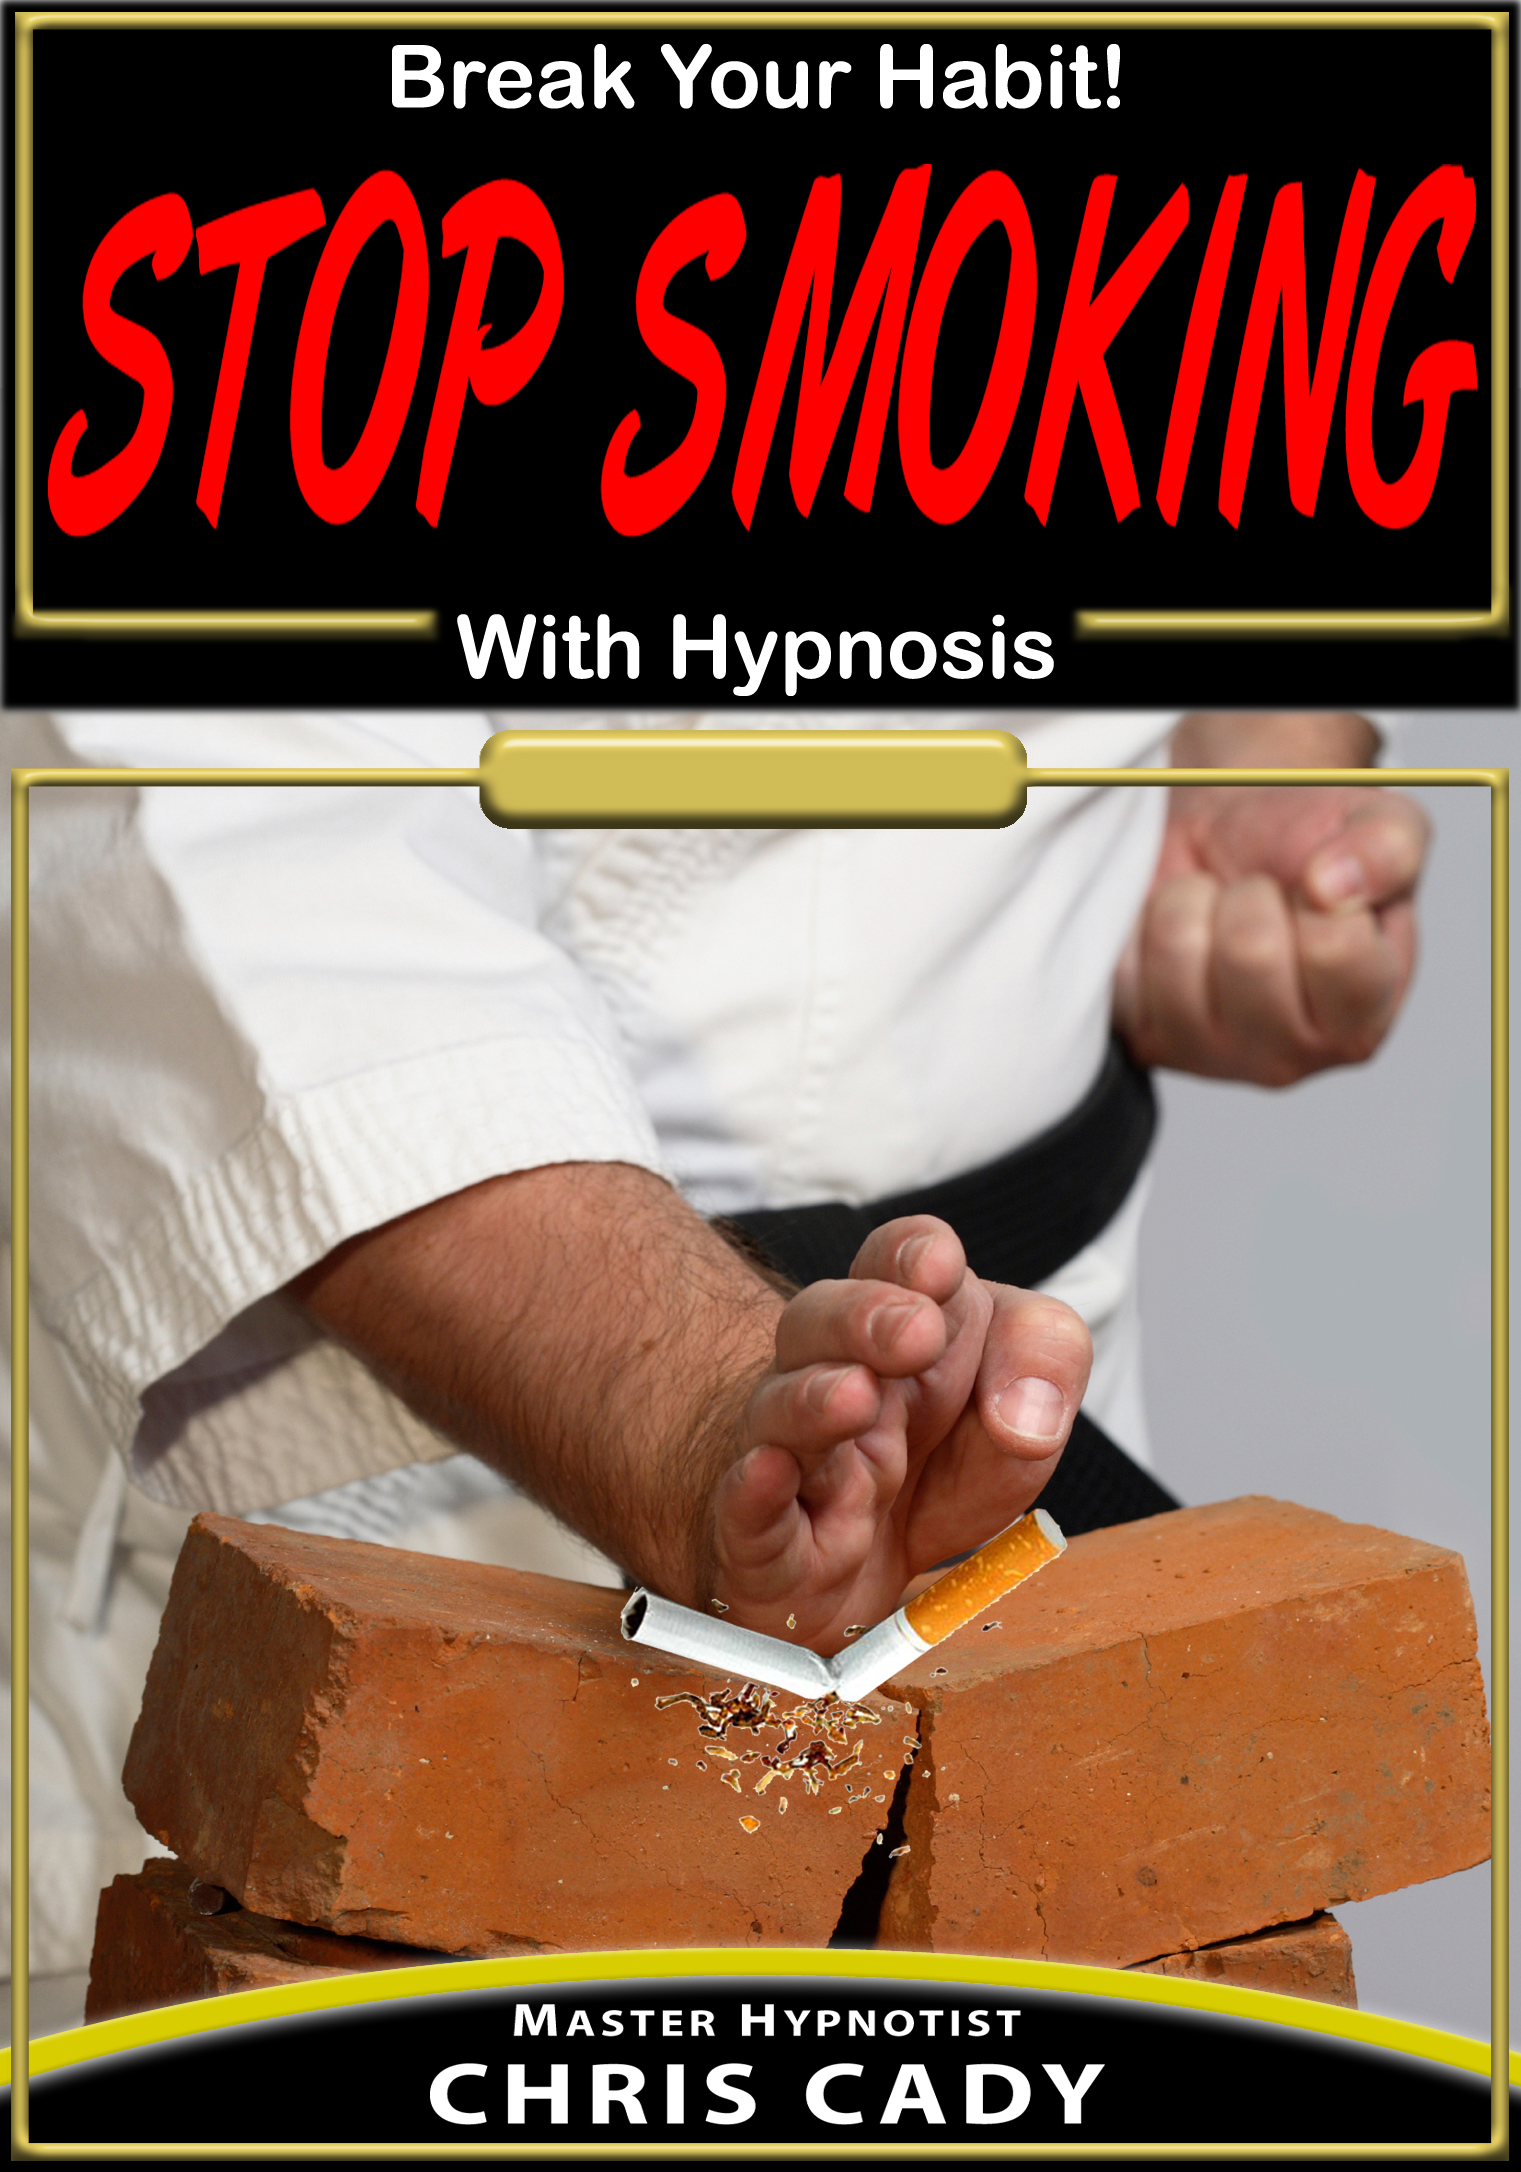 hypnosis cd stop smoking with hypnosis by hypnotist chris cady